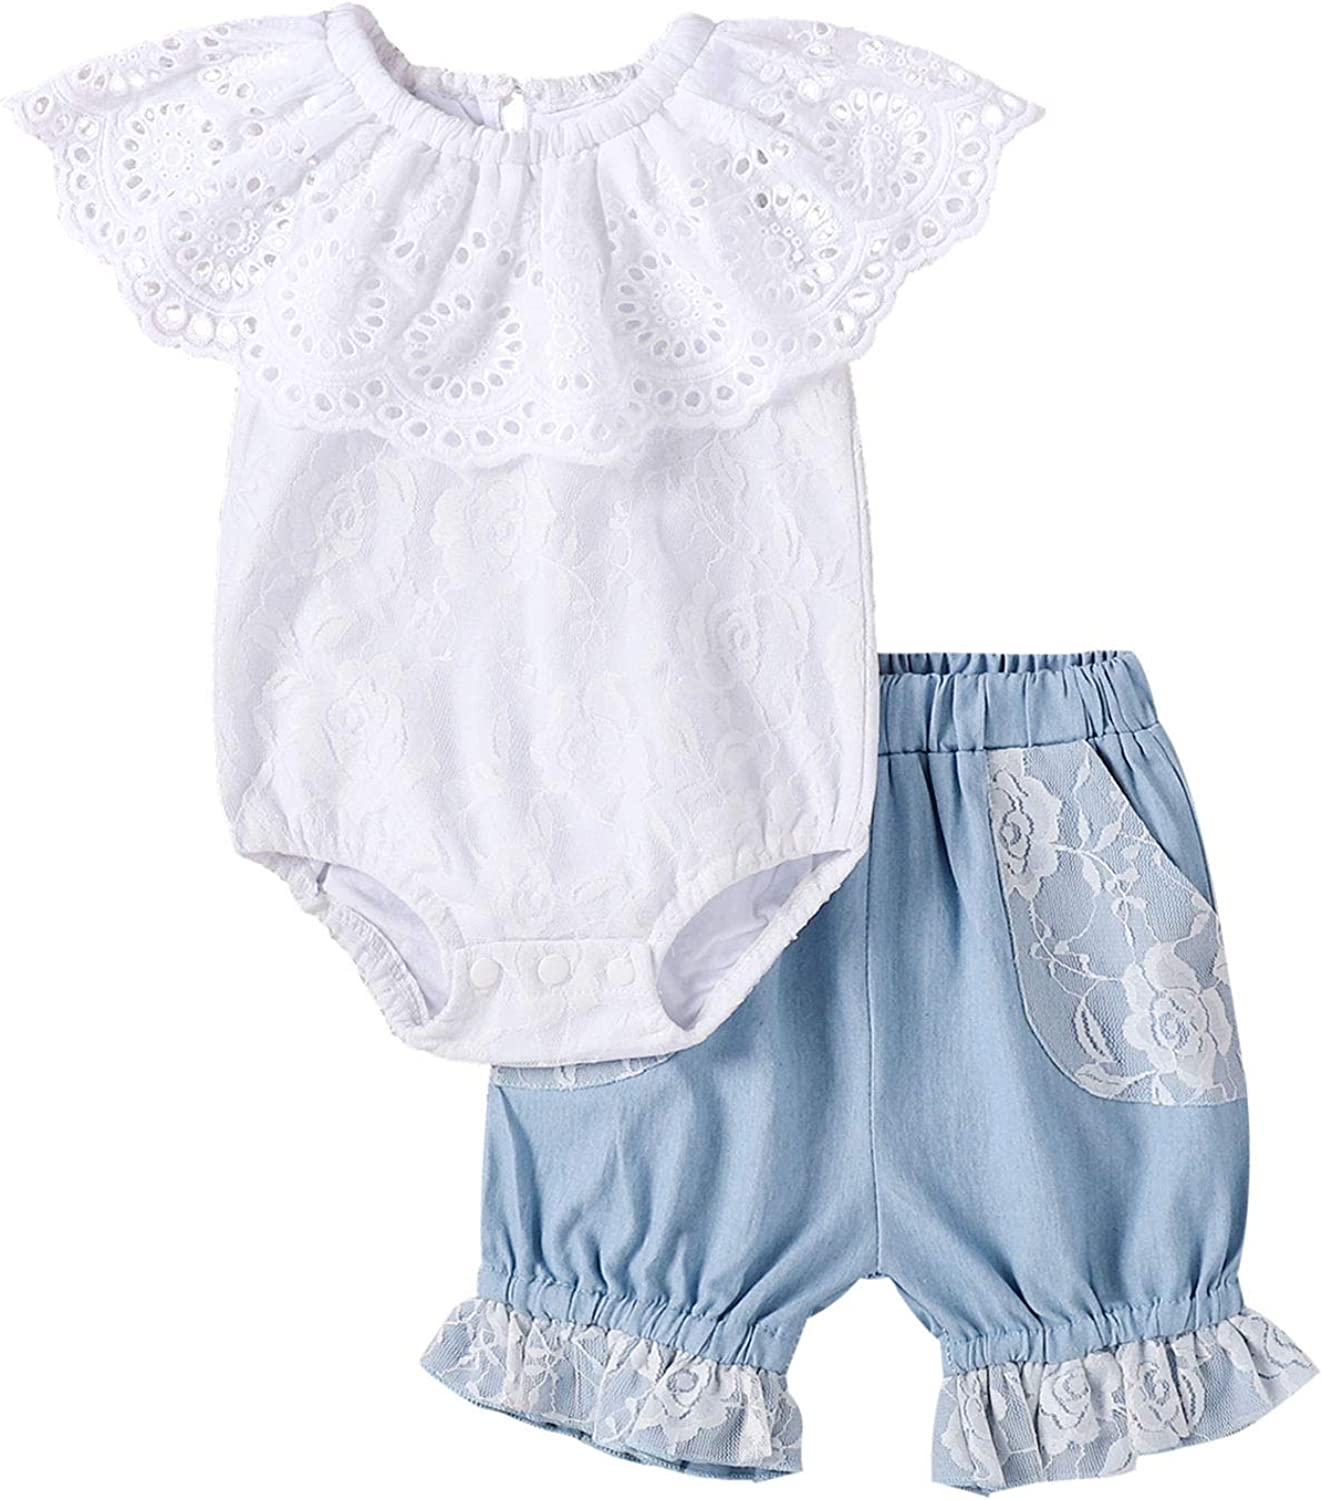 BOWINR Newborn Baby Girl Clothes Ruffled Romper Lace Bodysuit Jeans Floral Outfits Set